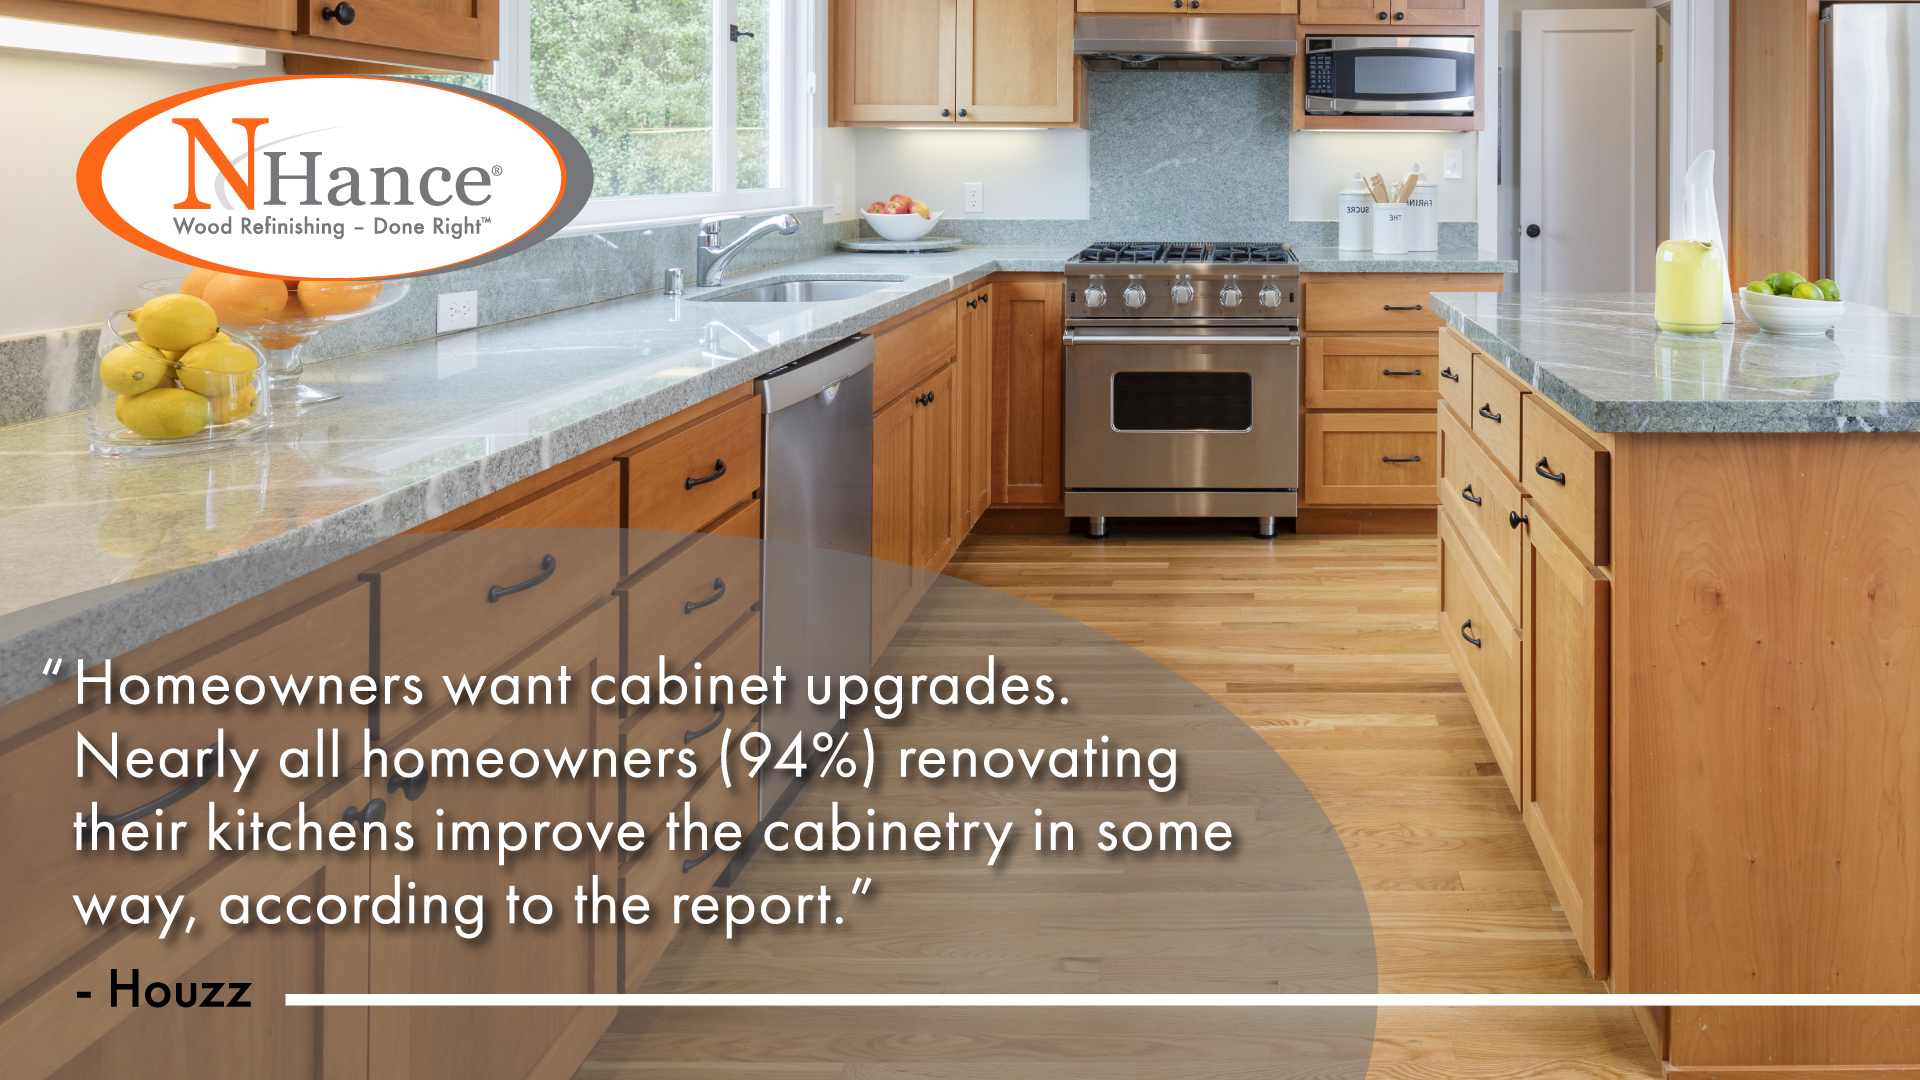 N-Hance franchise infographic about 94% of homeowners renovating their kitchens improve the cabinetry